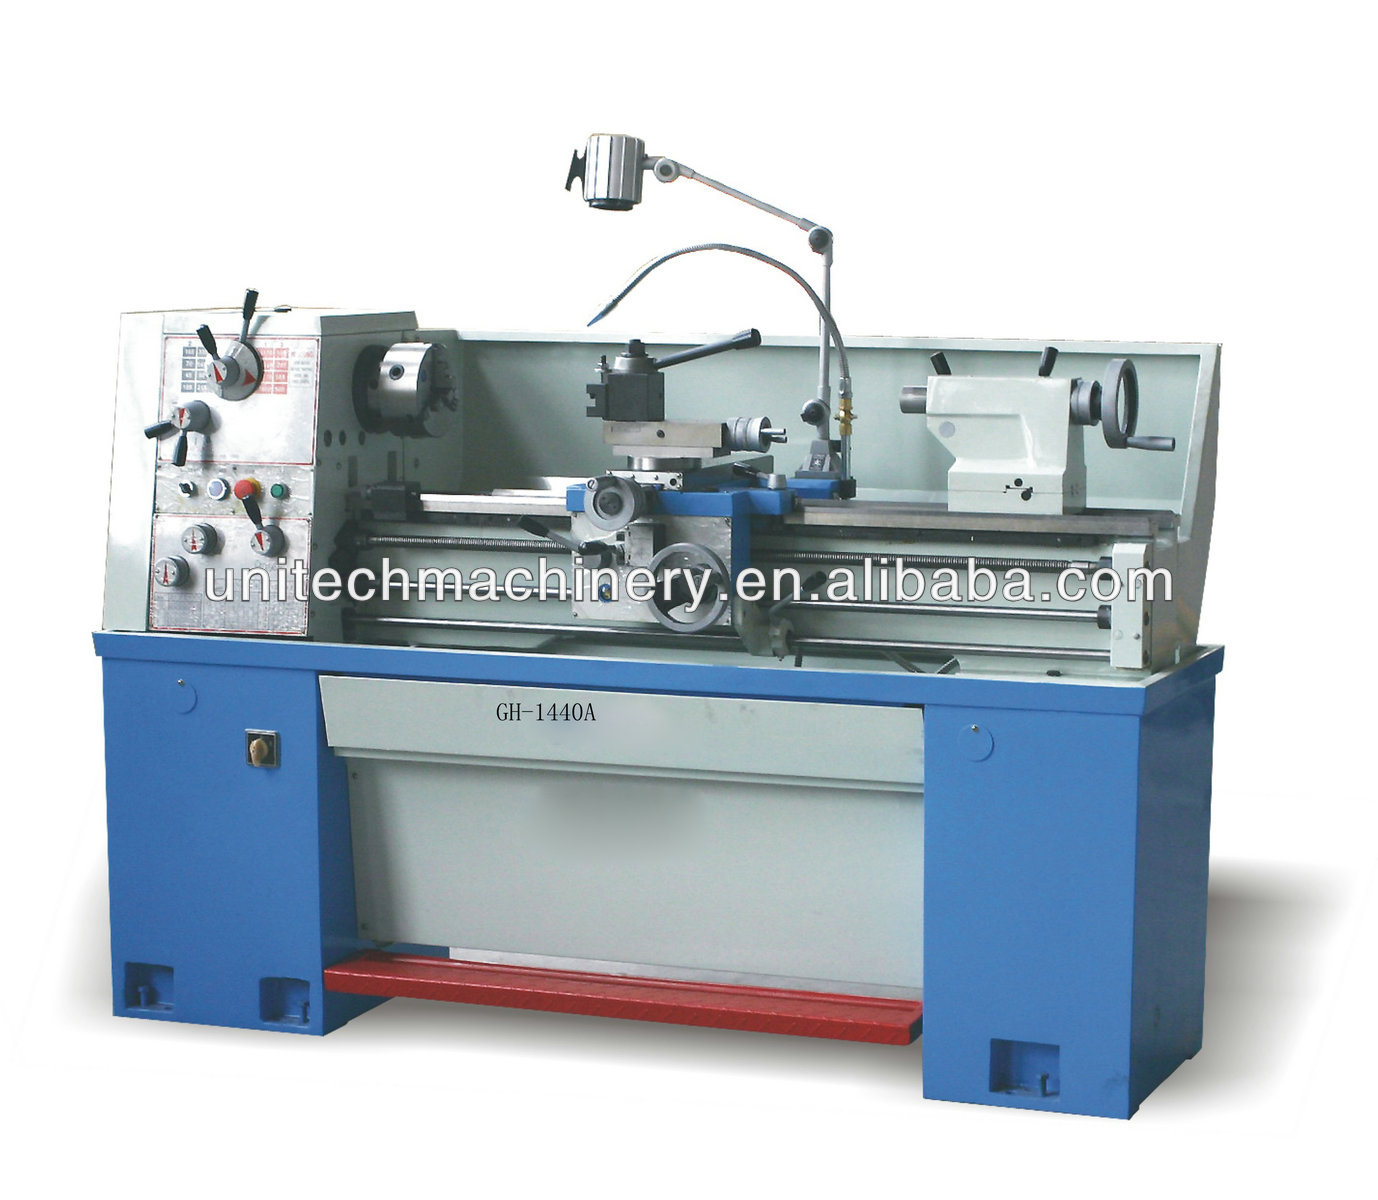 precision horizontal high speed gap bed lathe GH-1440A